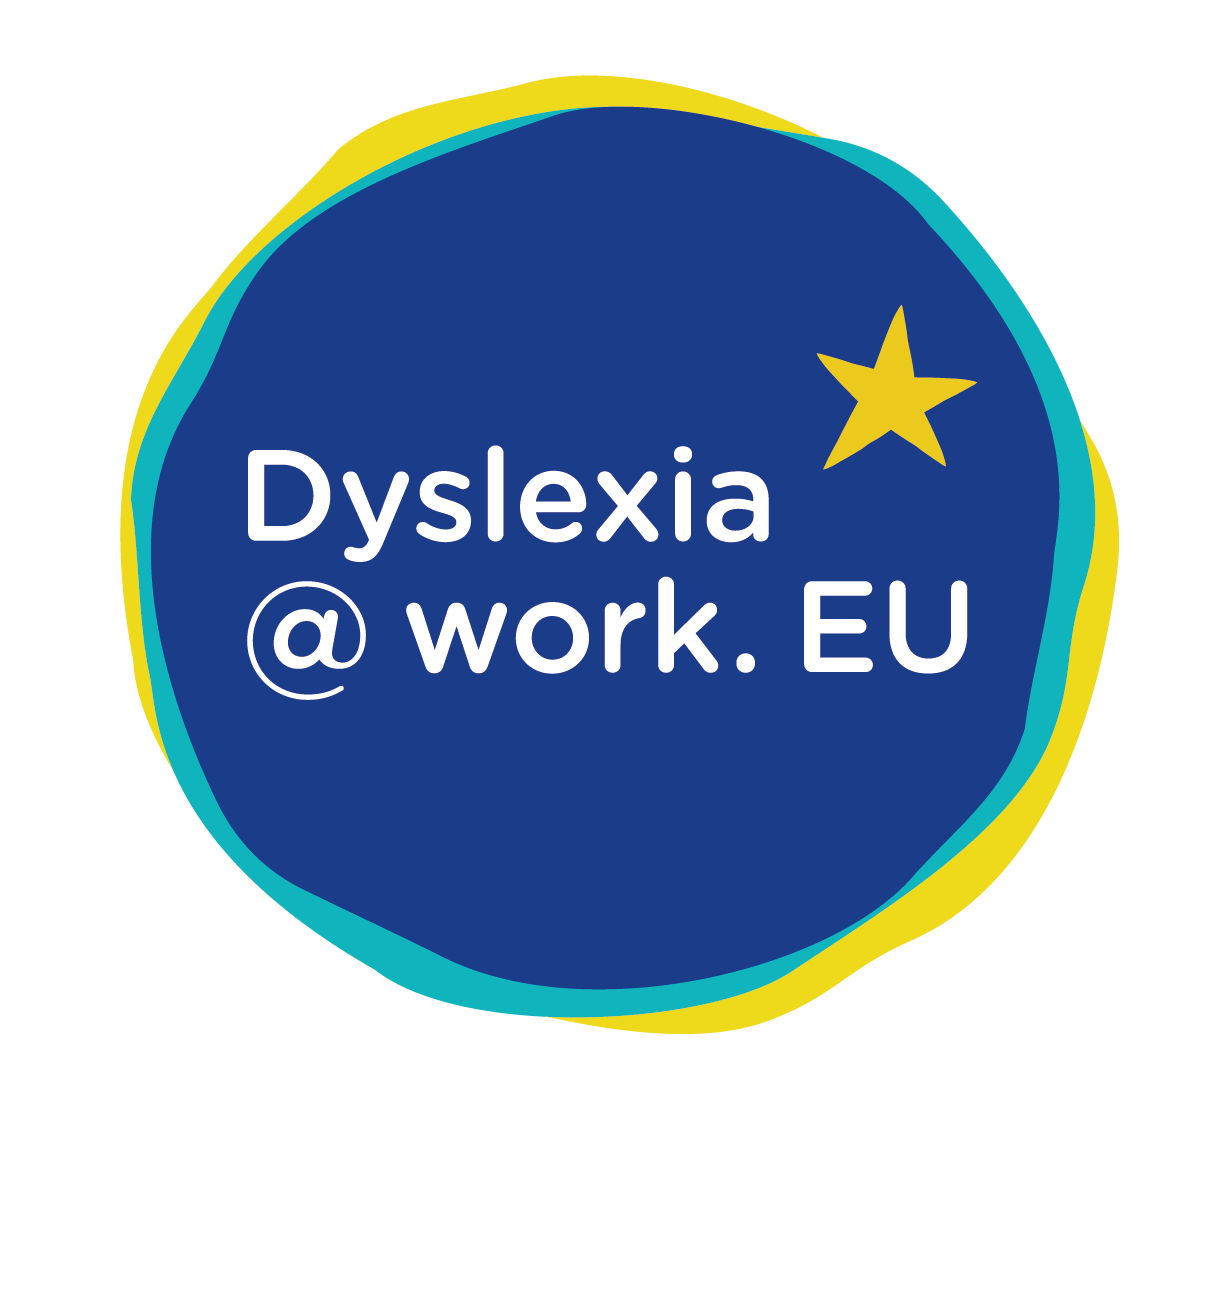 Dyslexia Projects